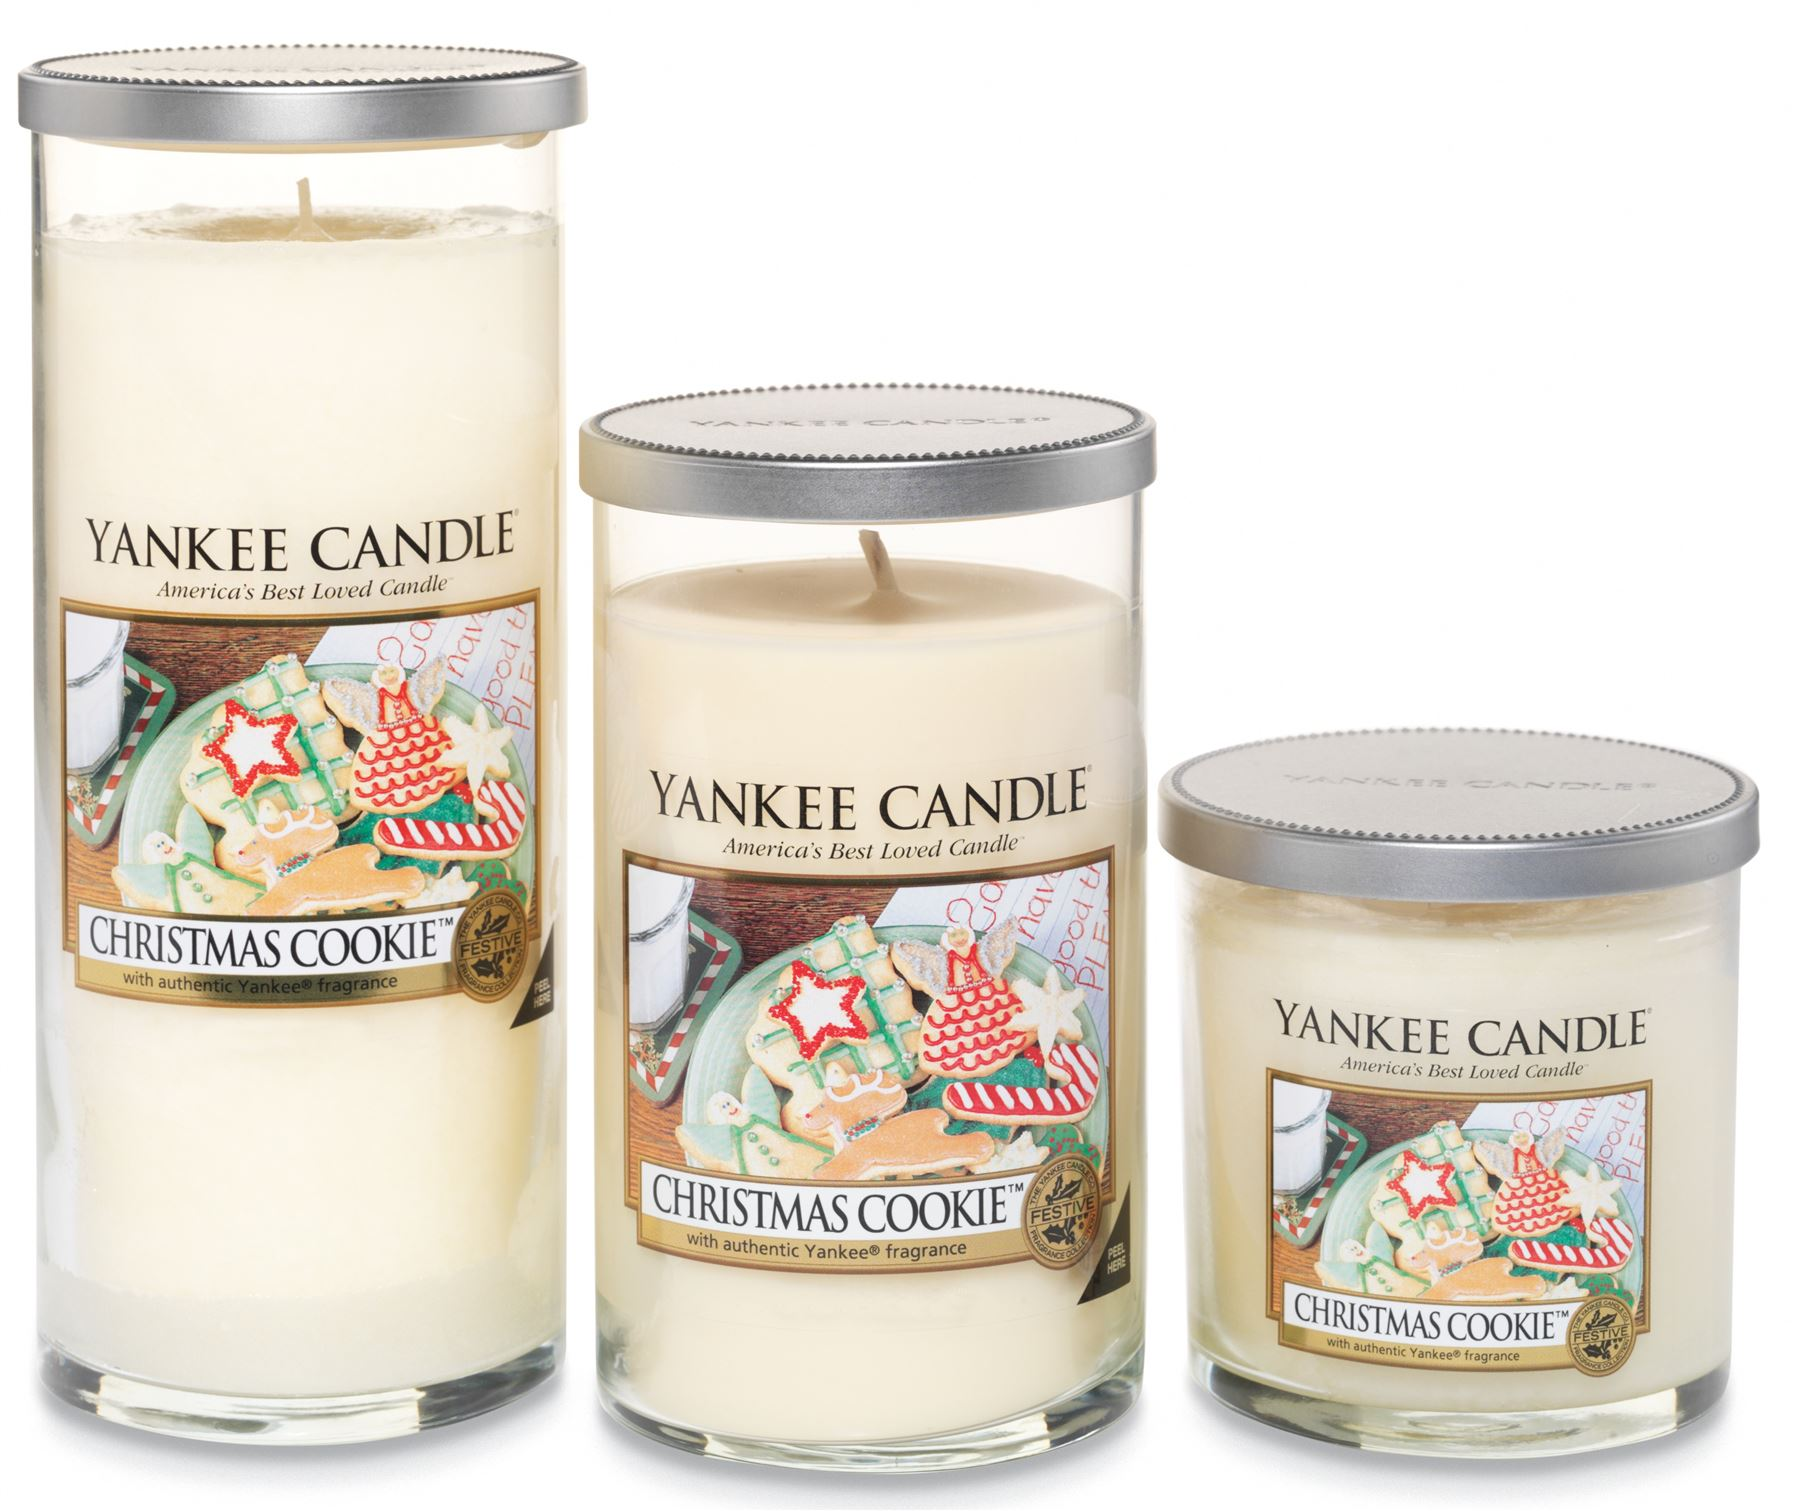 Yankee candle decor pillar fragranced candles choose your for How to scent candles